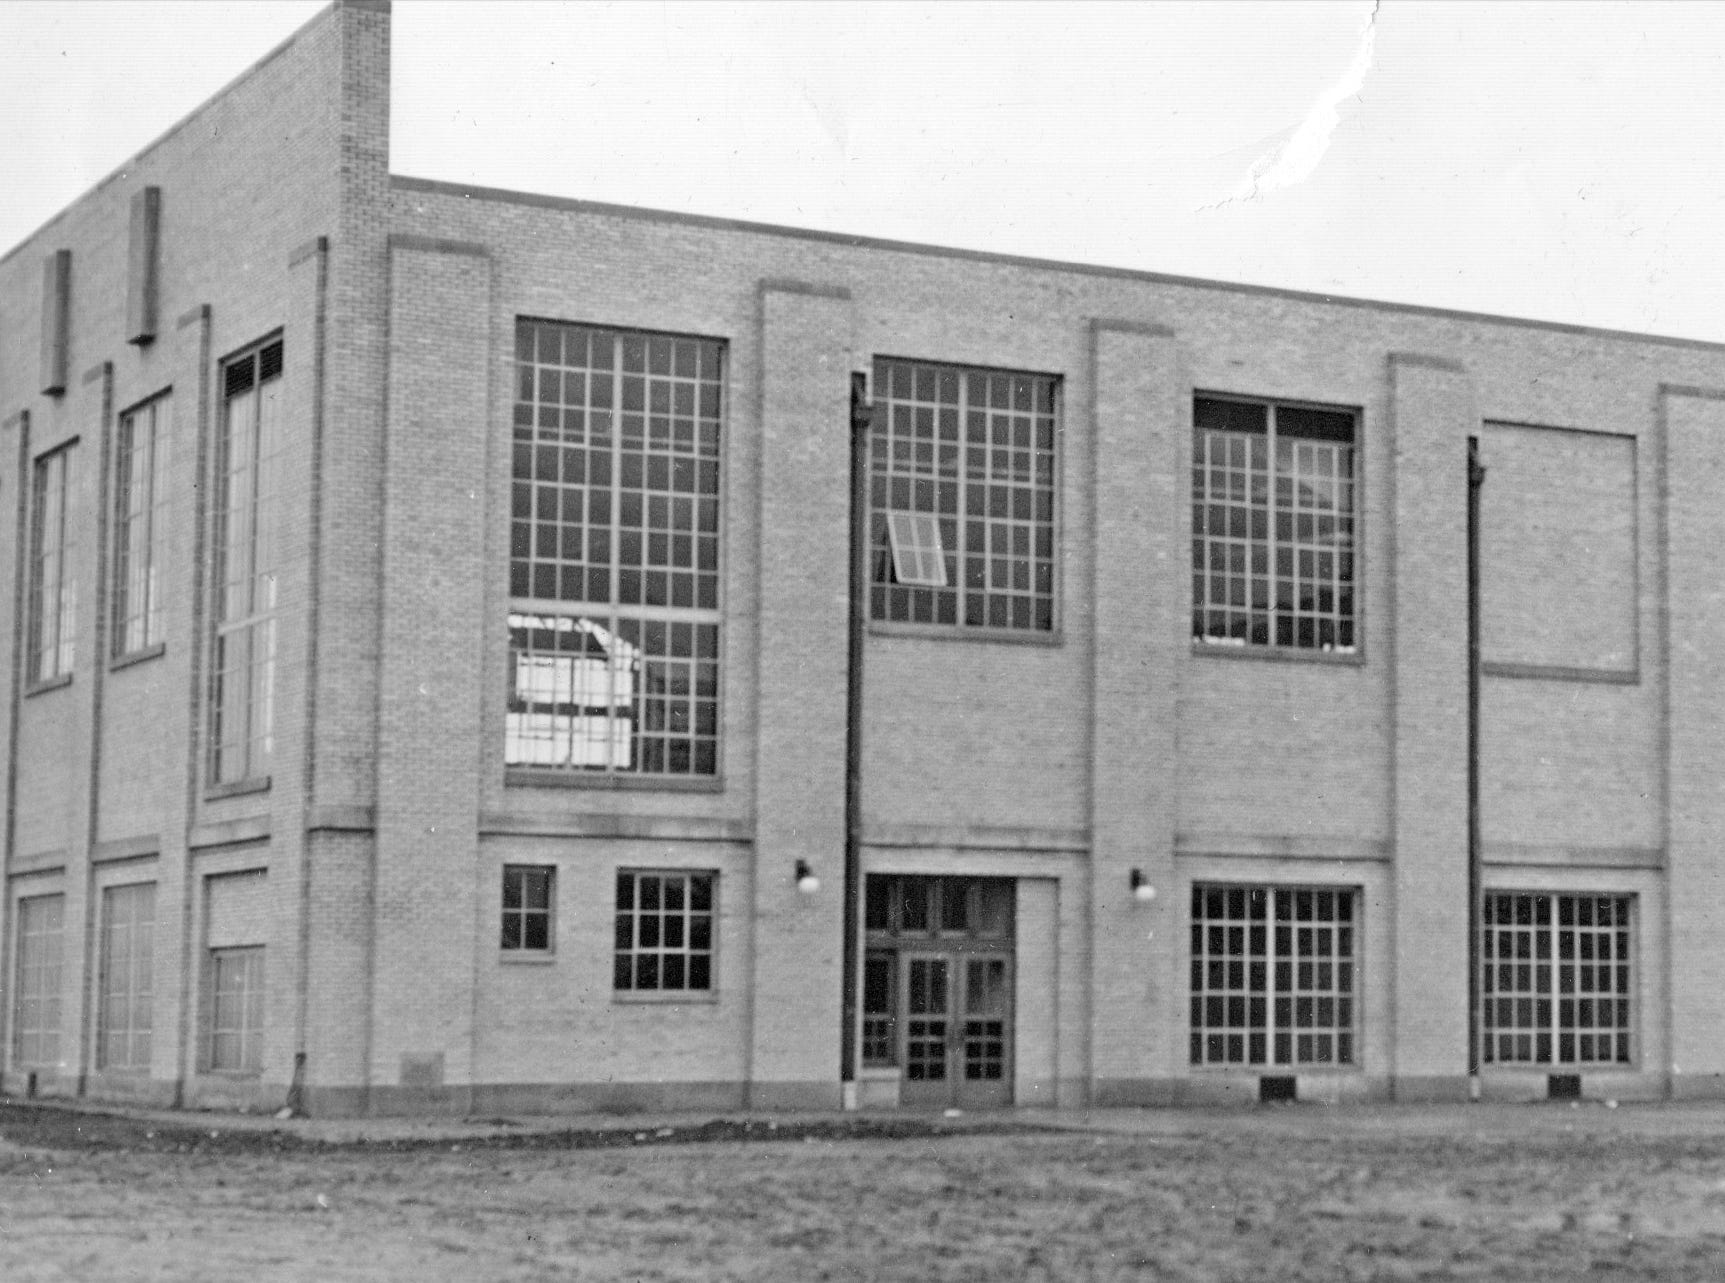 George Washington High School's athletes had a new modern gymnasium in 1938.